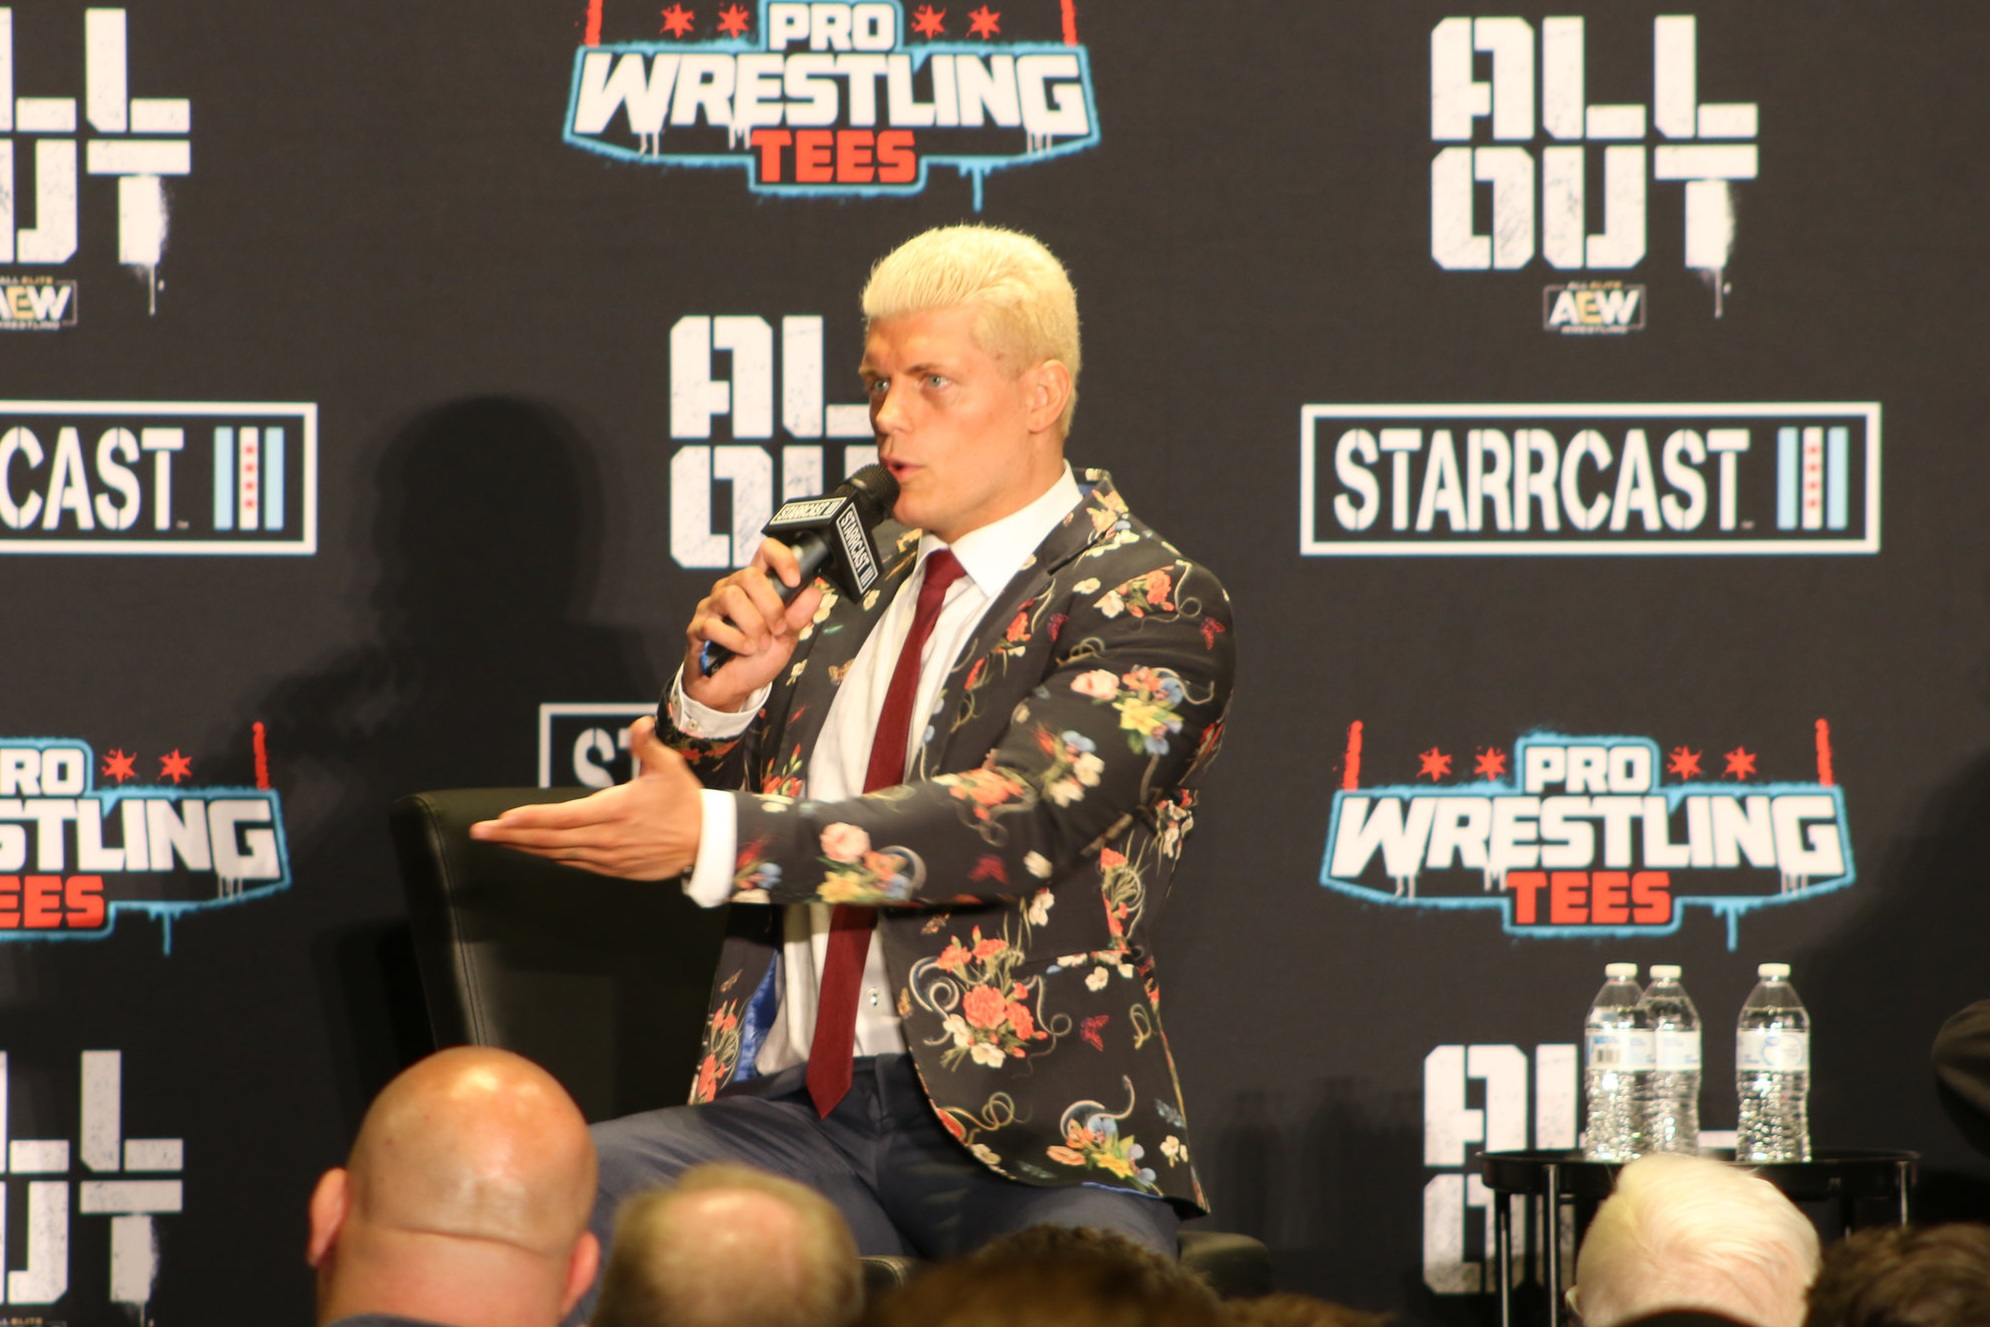 Cody Rhodes spent a decade under the WWE umbrella, but he now is breaking out as part of All Elite Wrestling. He will face Shawn Spears at All Out in suburban Chicago on Saturday night.  (Photo by Mike Pankow)